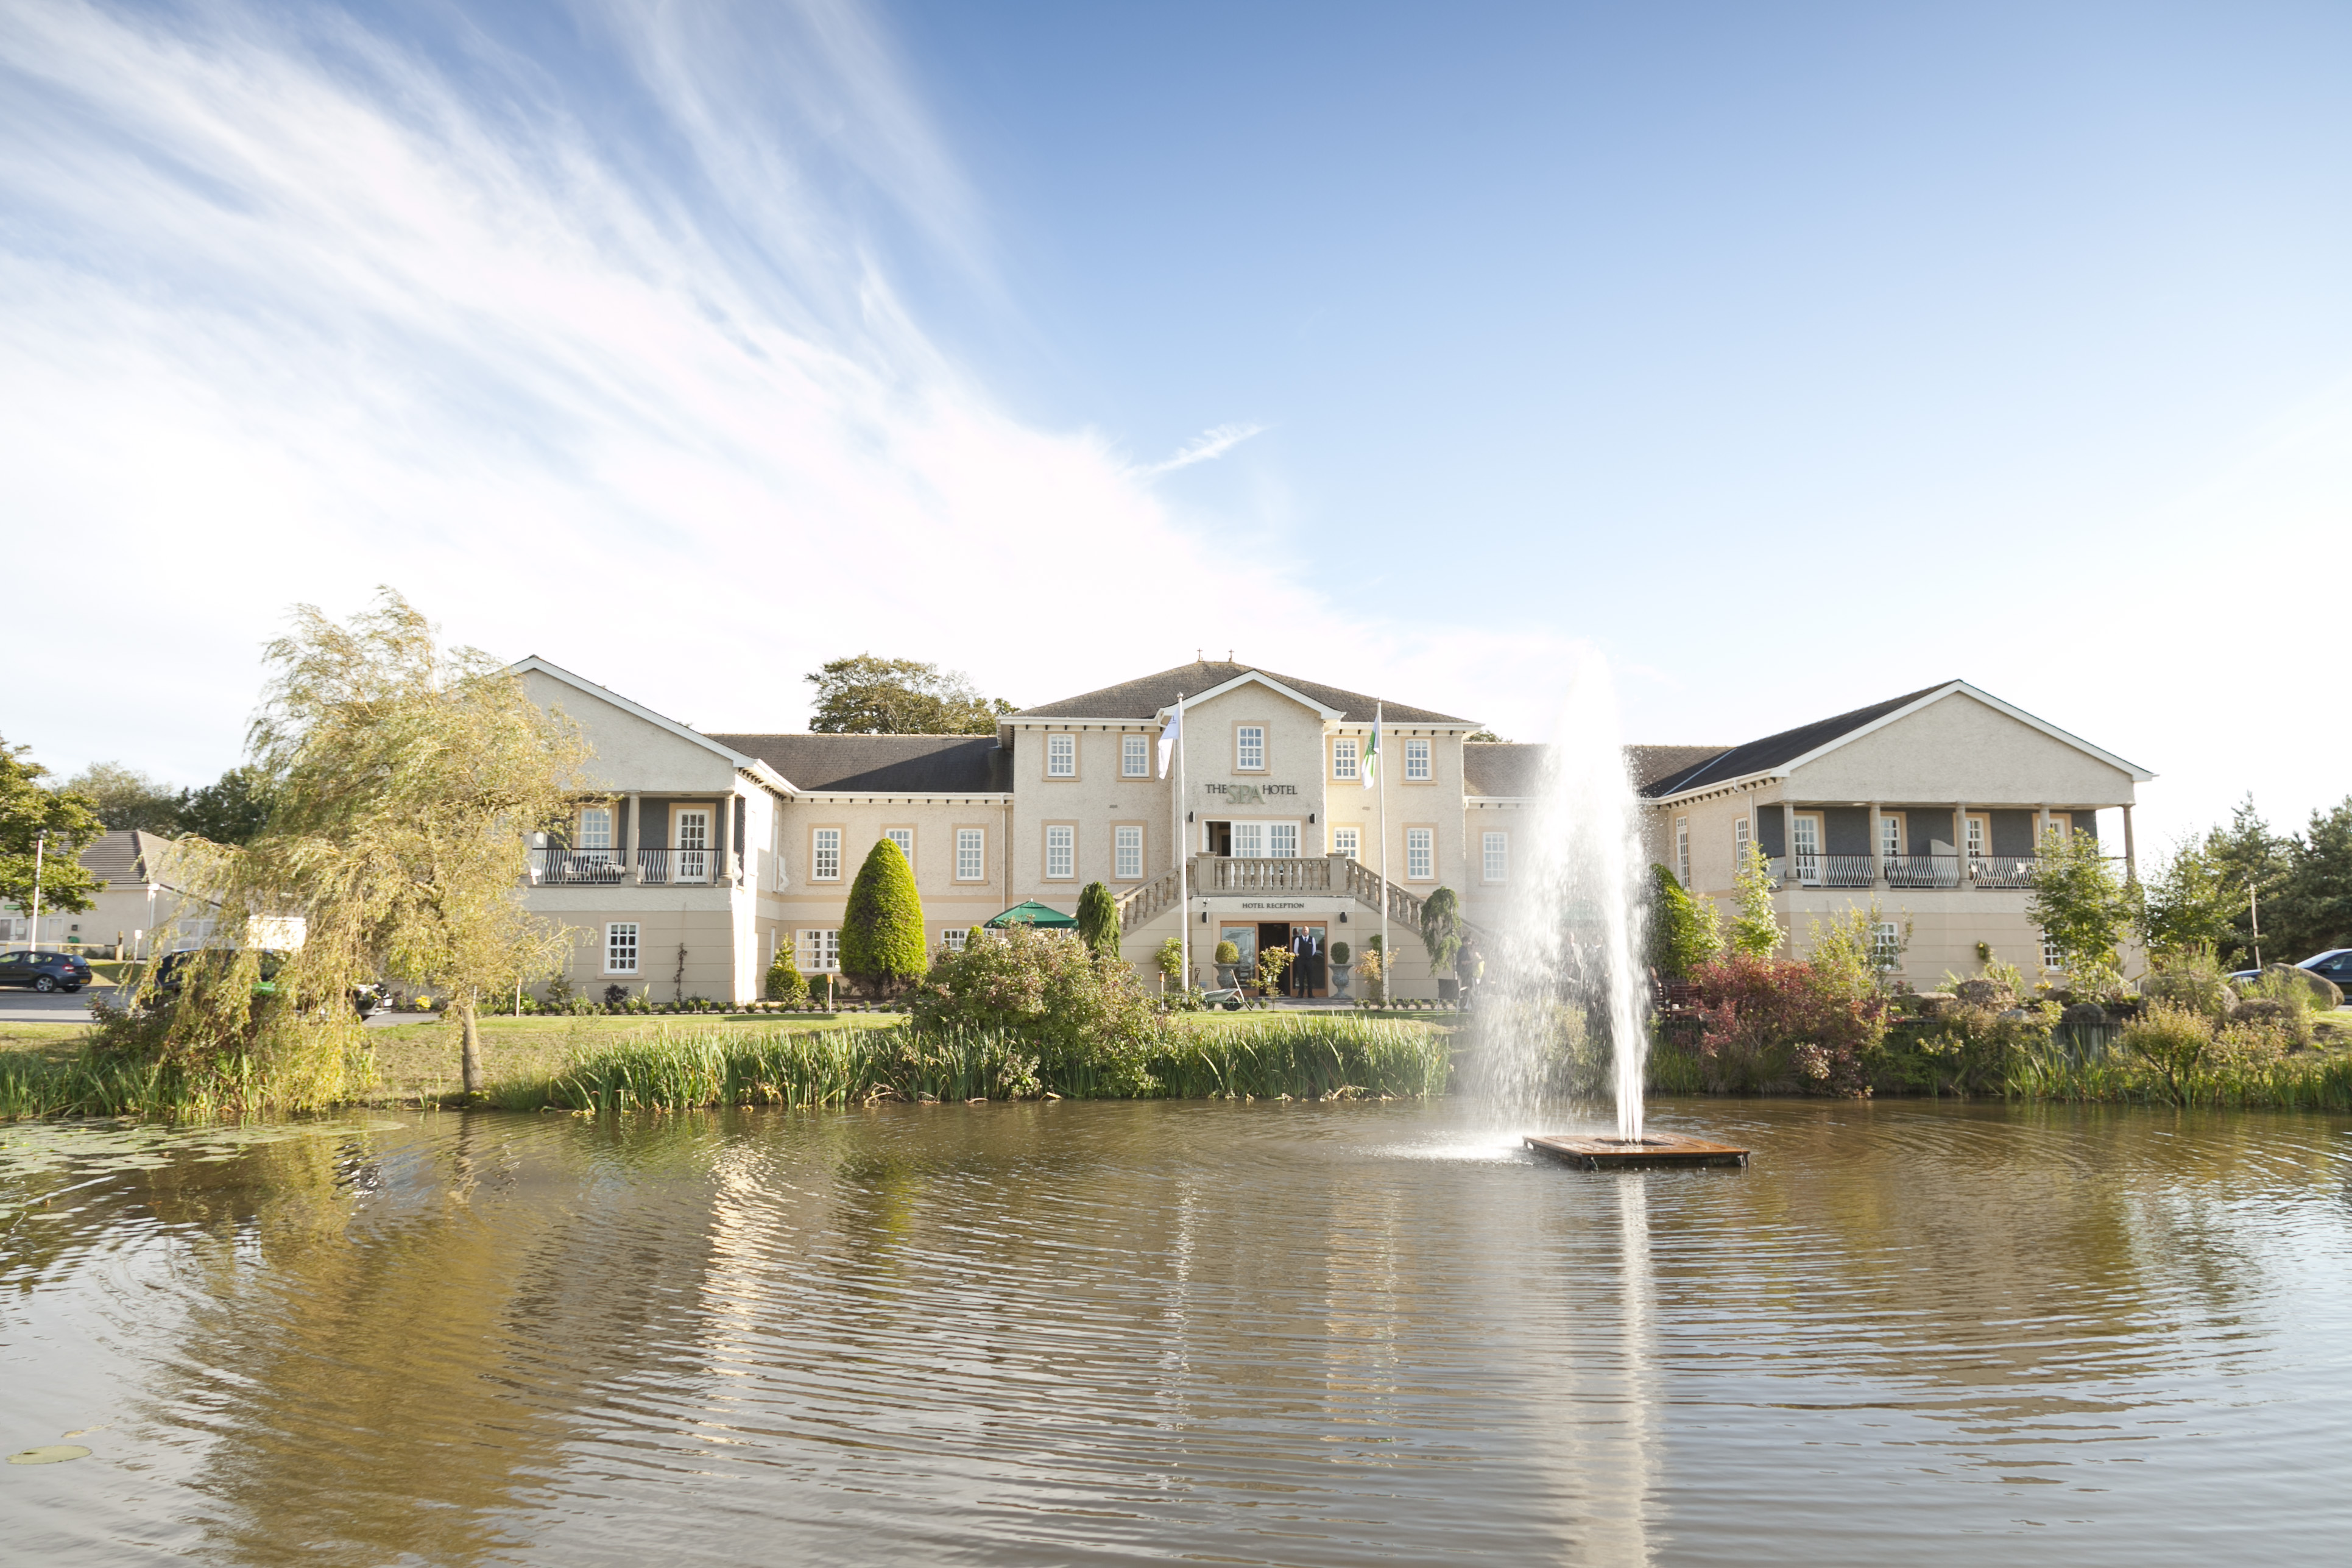 The Spa Hotel at Ribby Hall Village